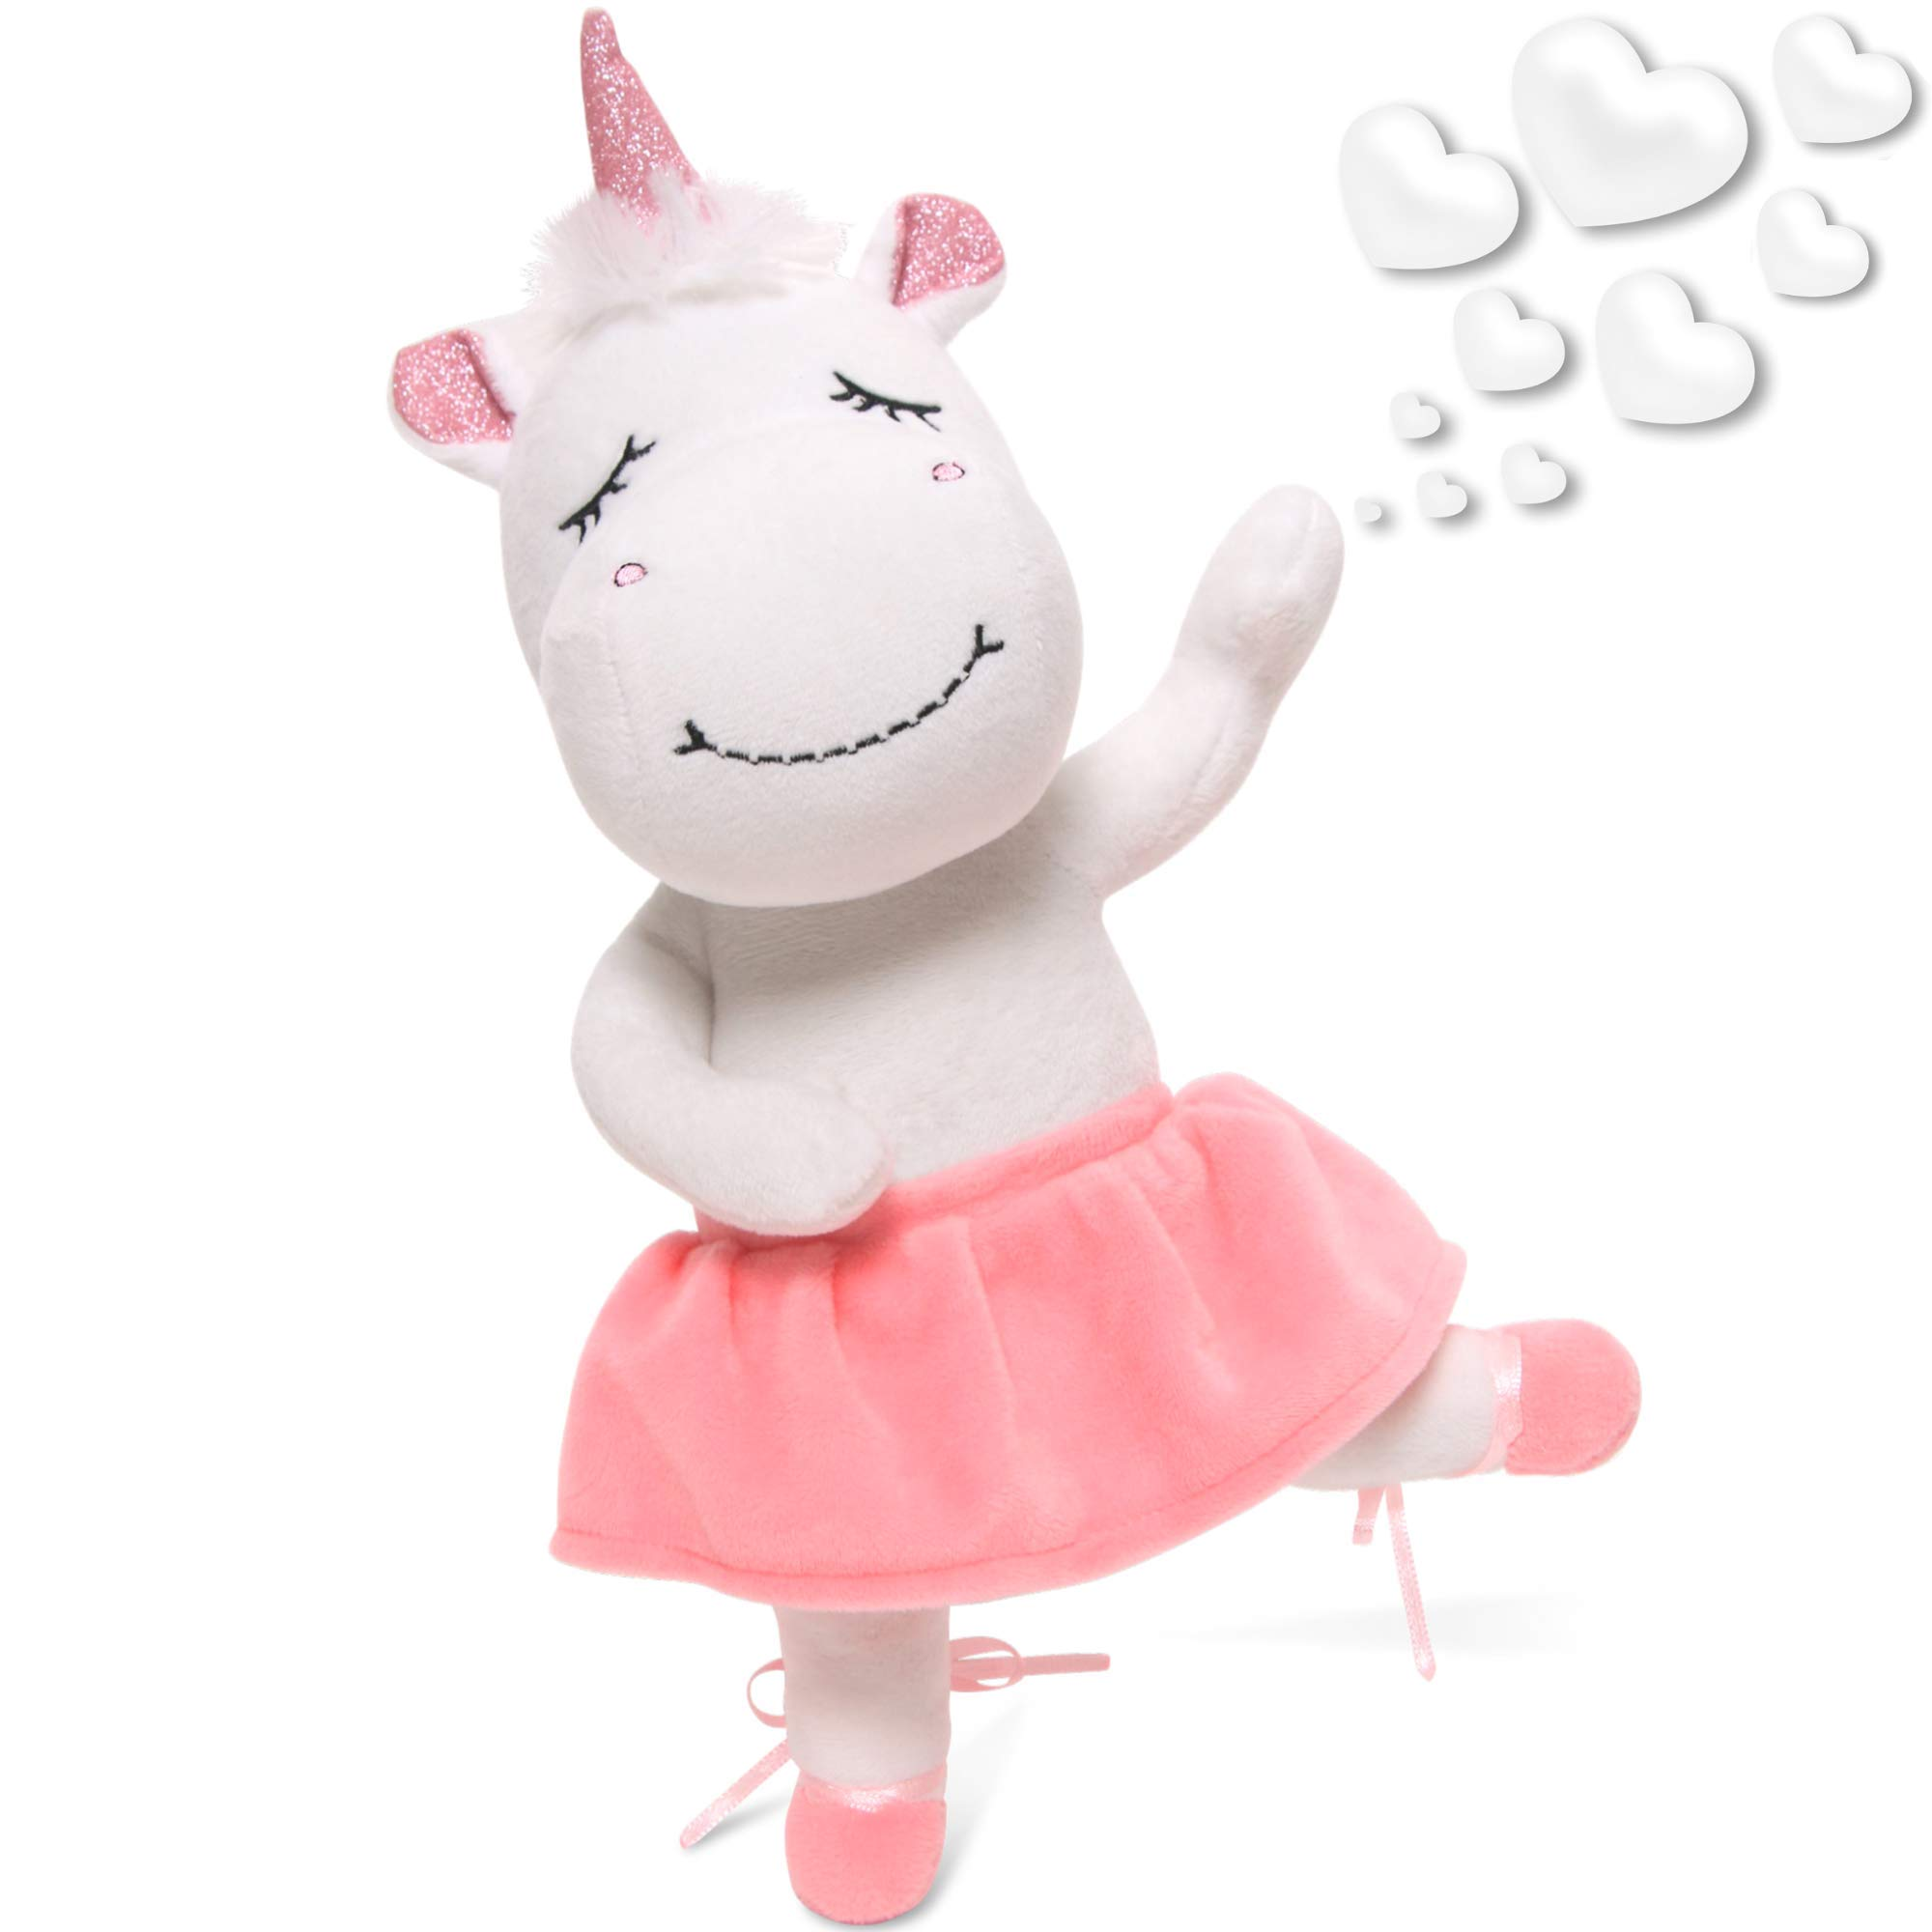 """Unicorn Stuffed Animal - Cute Posable Ballerina Unicorn Gifts Large 14"""" White & Pink Unicorn Plush Toy! Gift Packaged for Girls Birthday, Valentines or Graduation w eBook Included - by Marvs Store."""